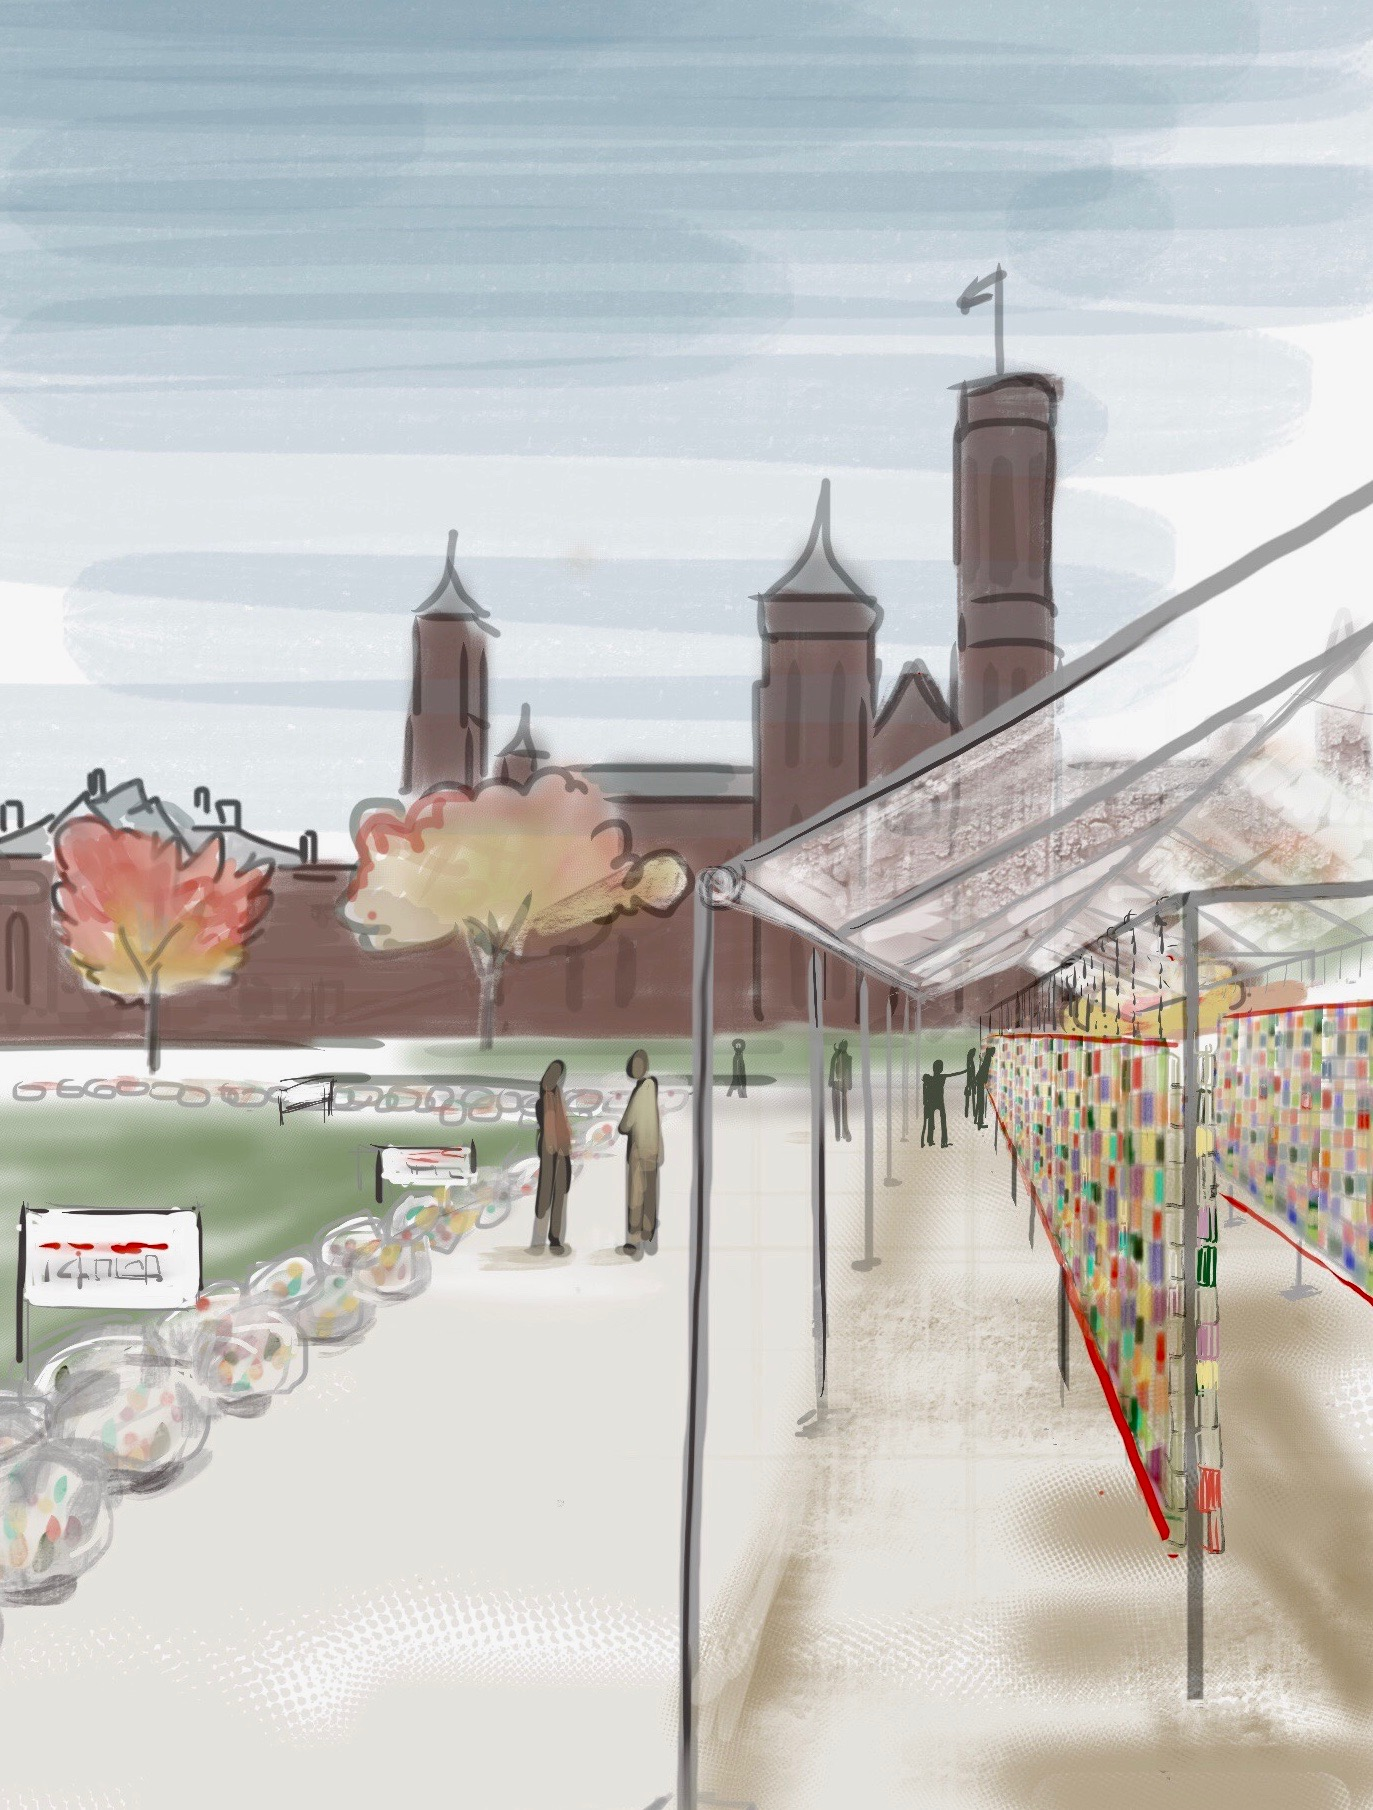 Artist's rendering of Soul Box exhibit in front of the Smithsonian Castle